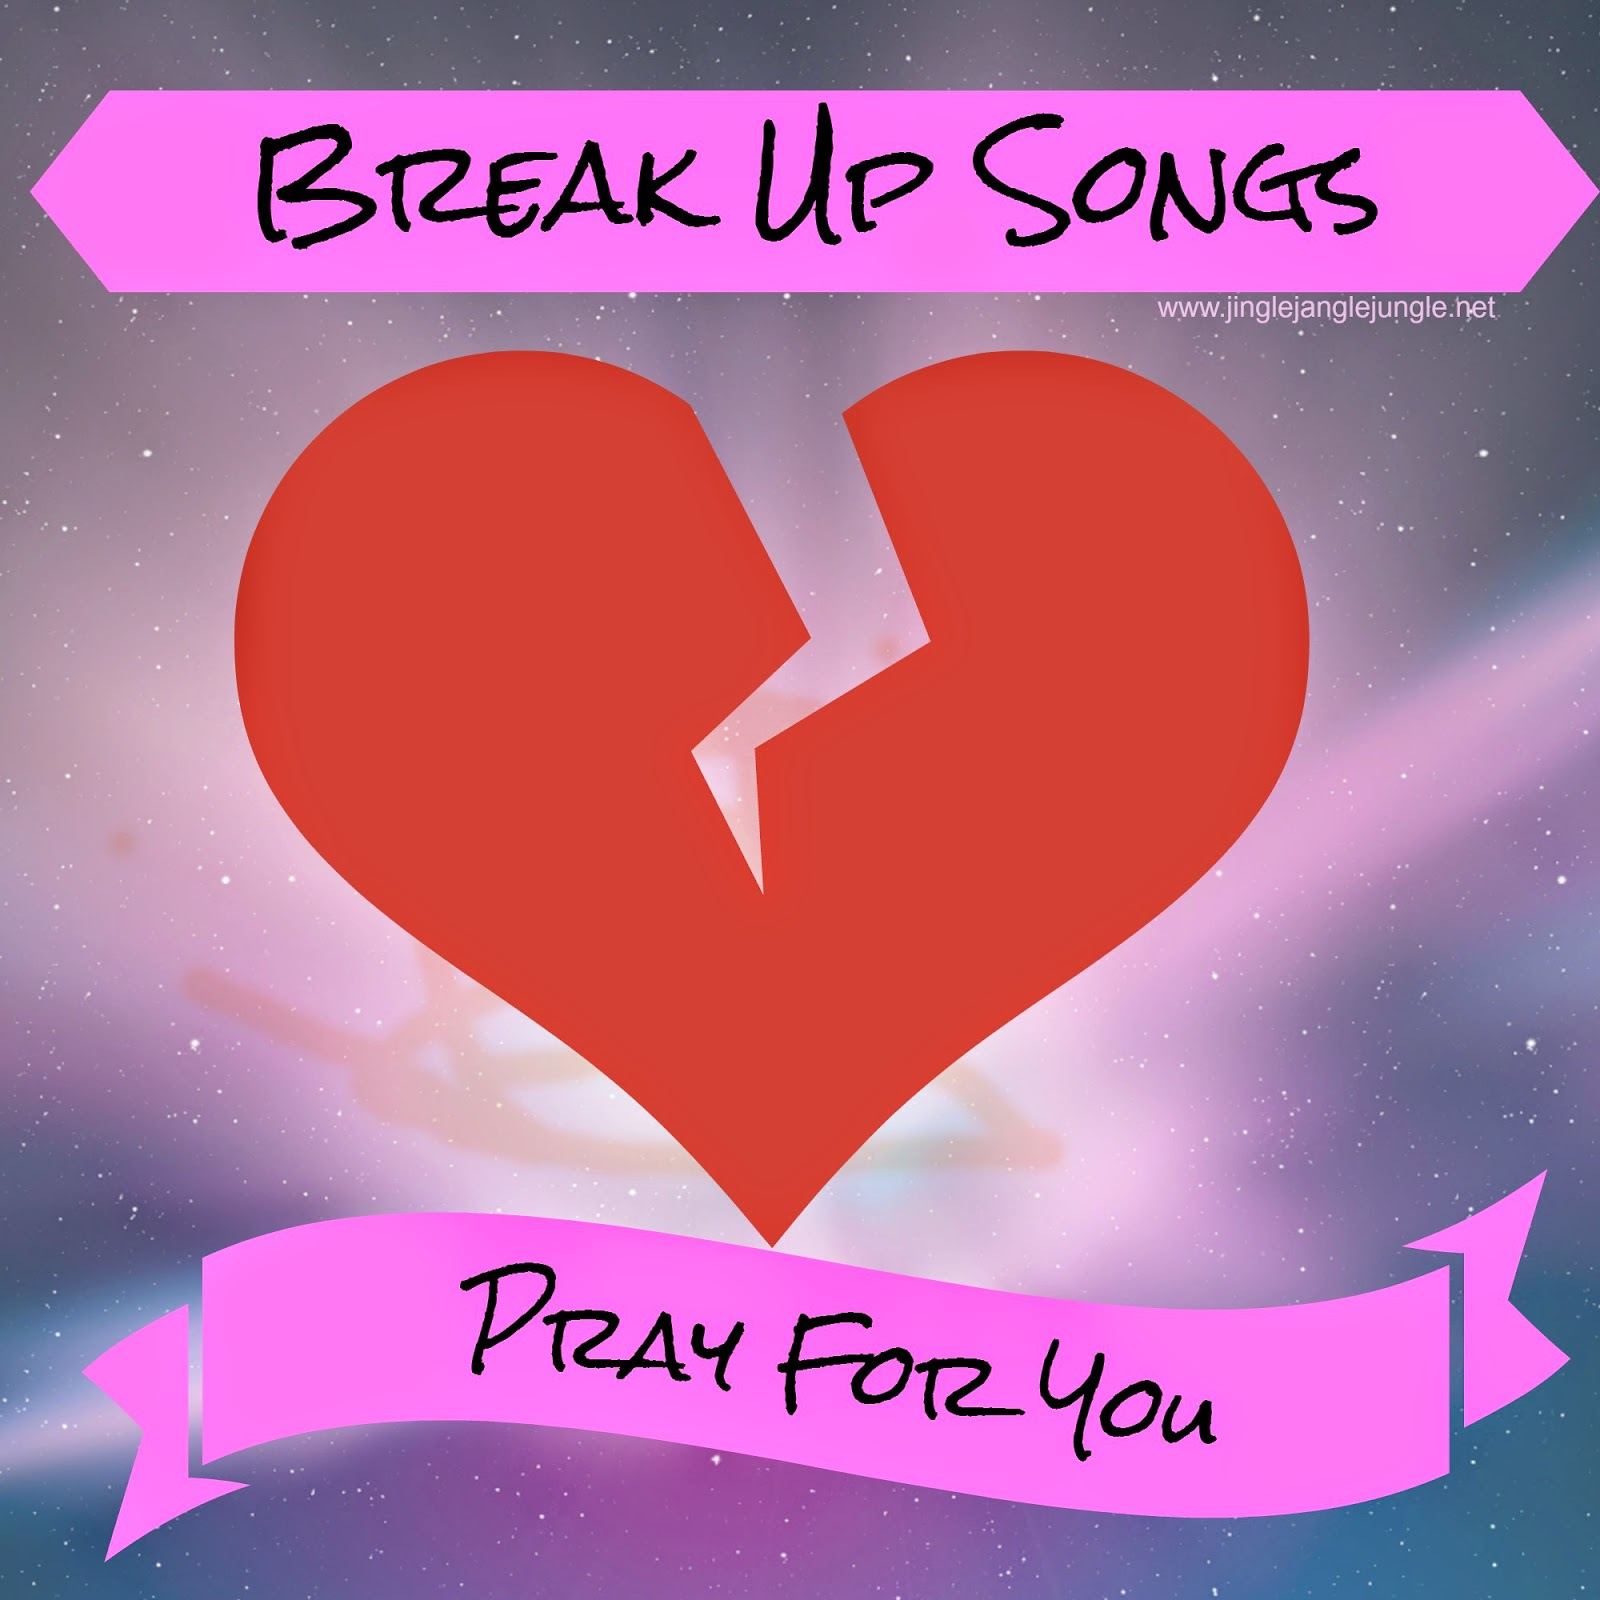 Break Up Songs: Pray For You http://www.jinglejanglejungle.net/2015/02/break-up-pray.html #BreakUpSongs